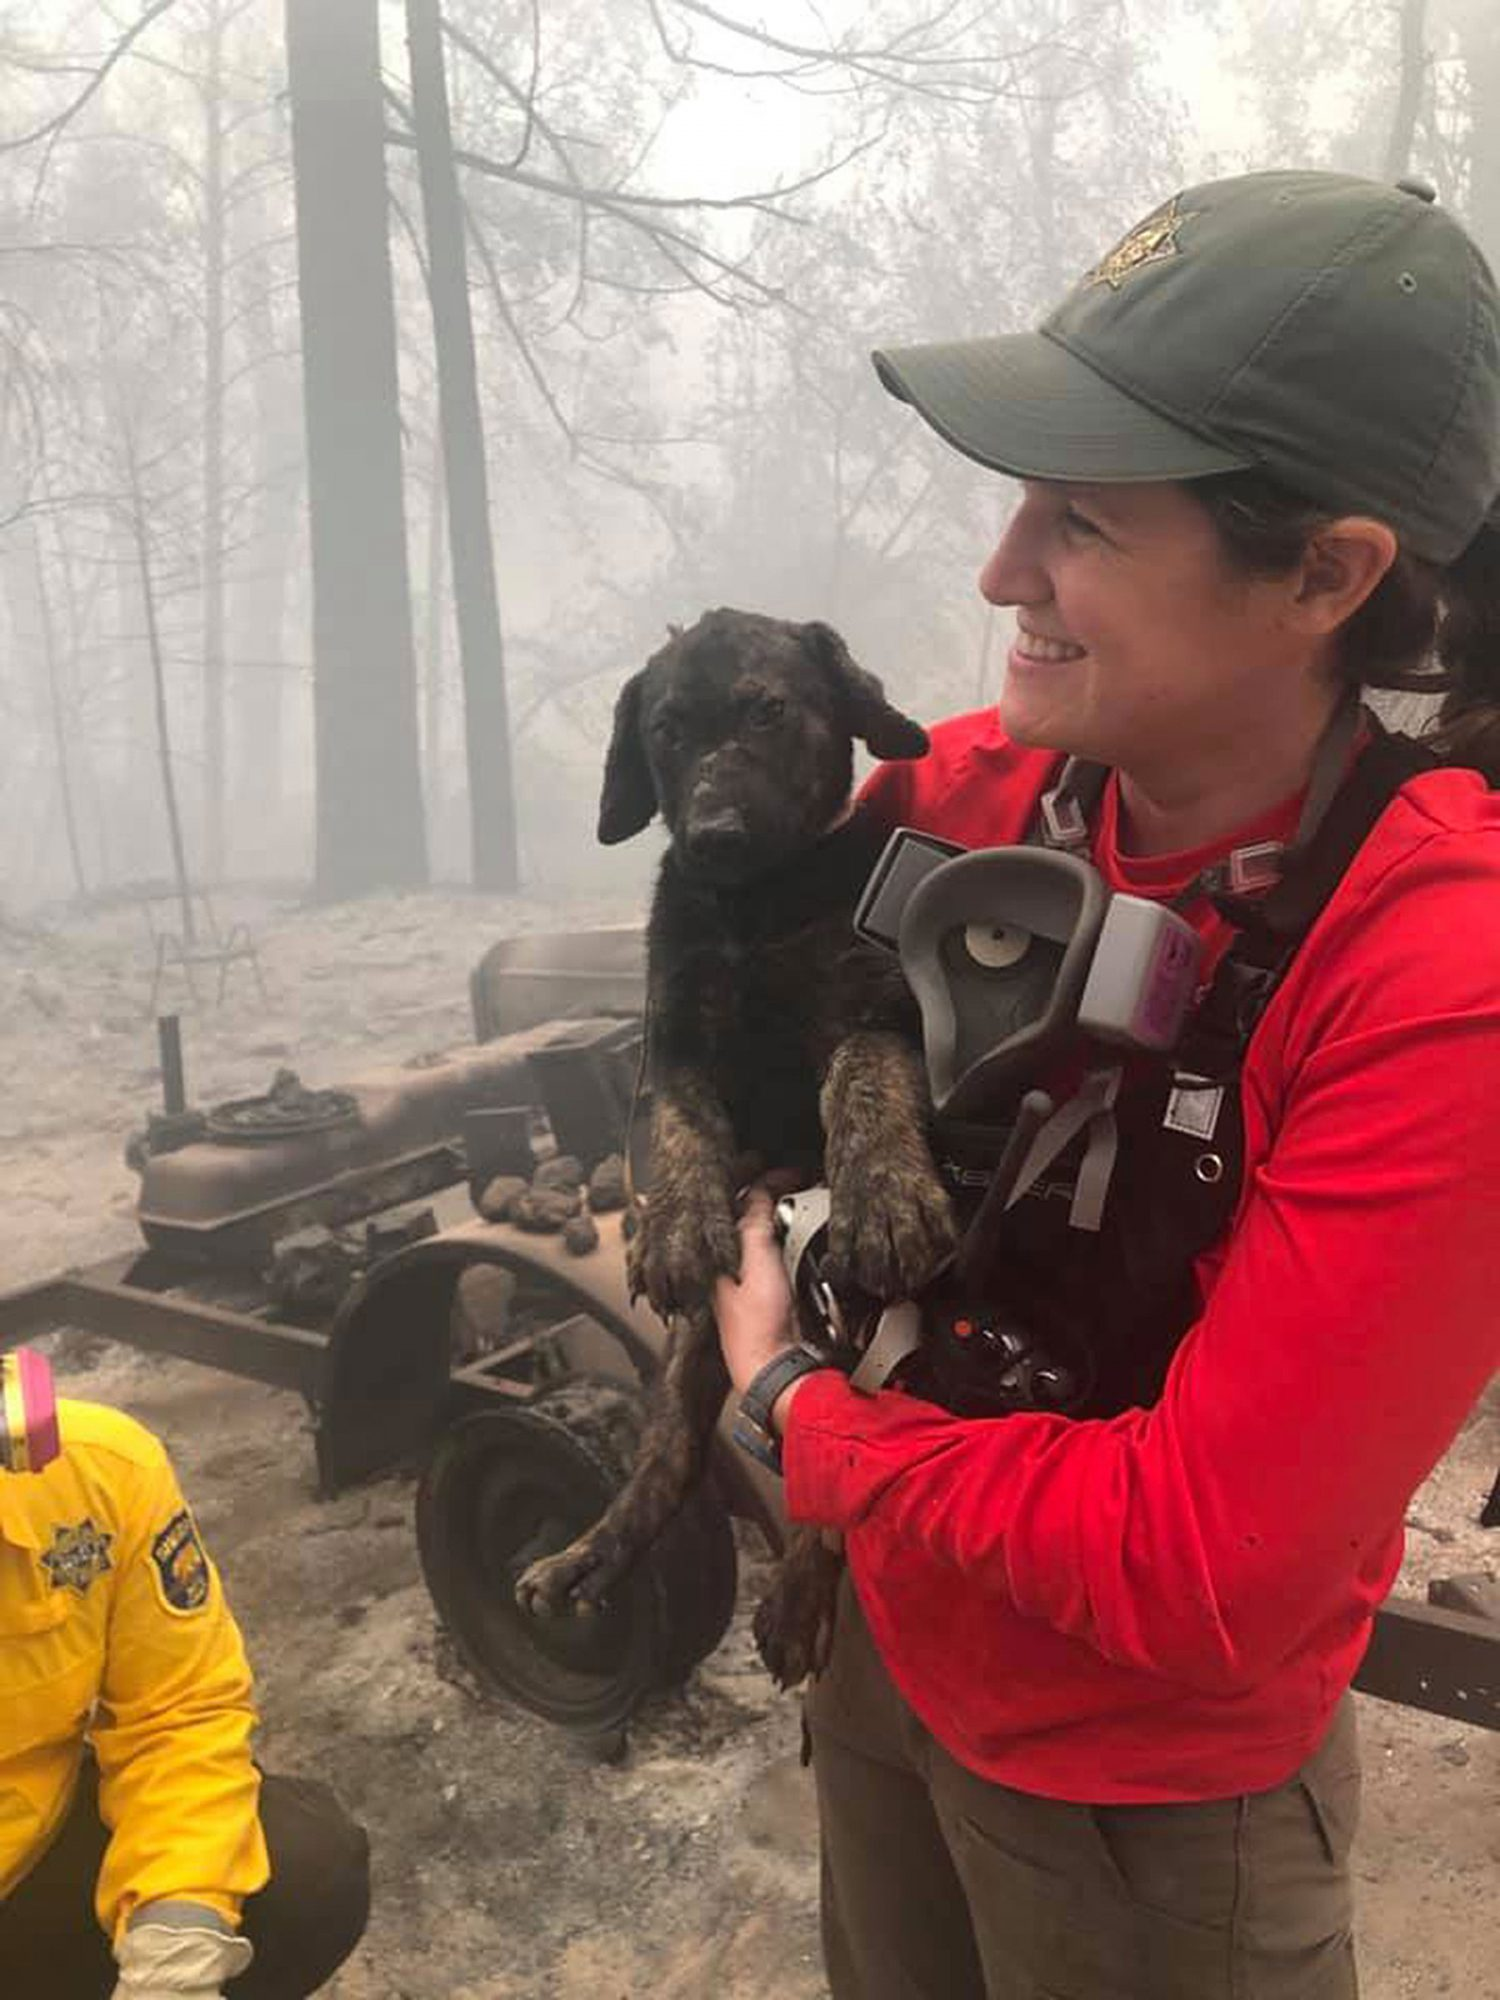 rescue worker holding dog